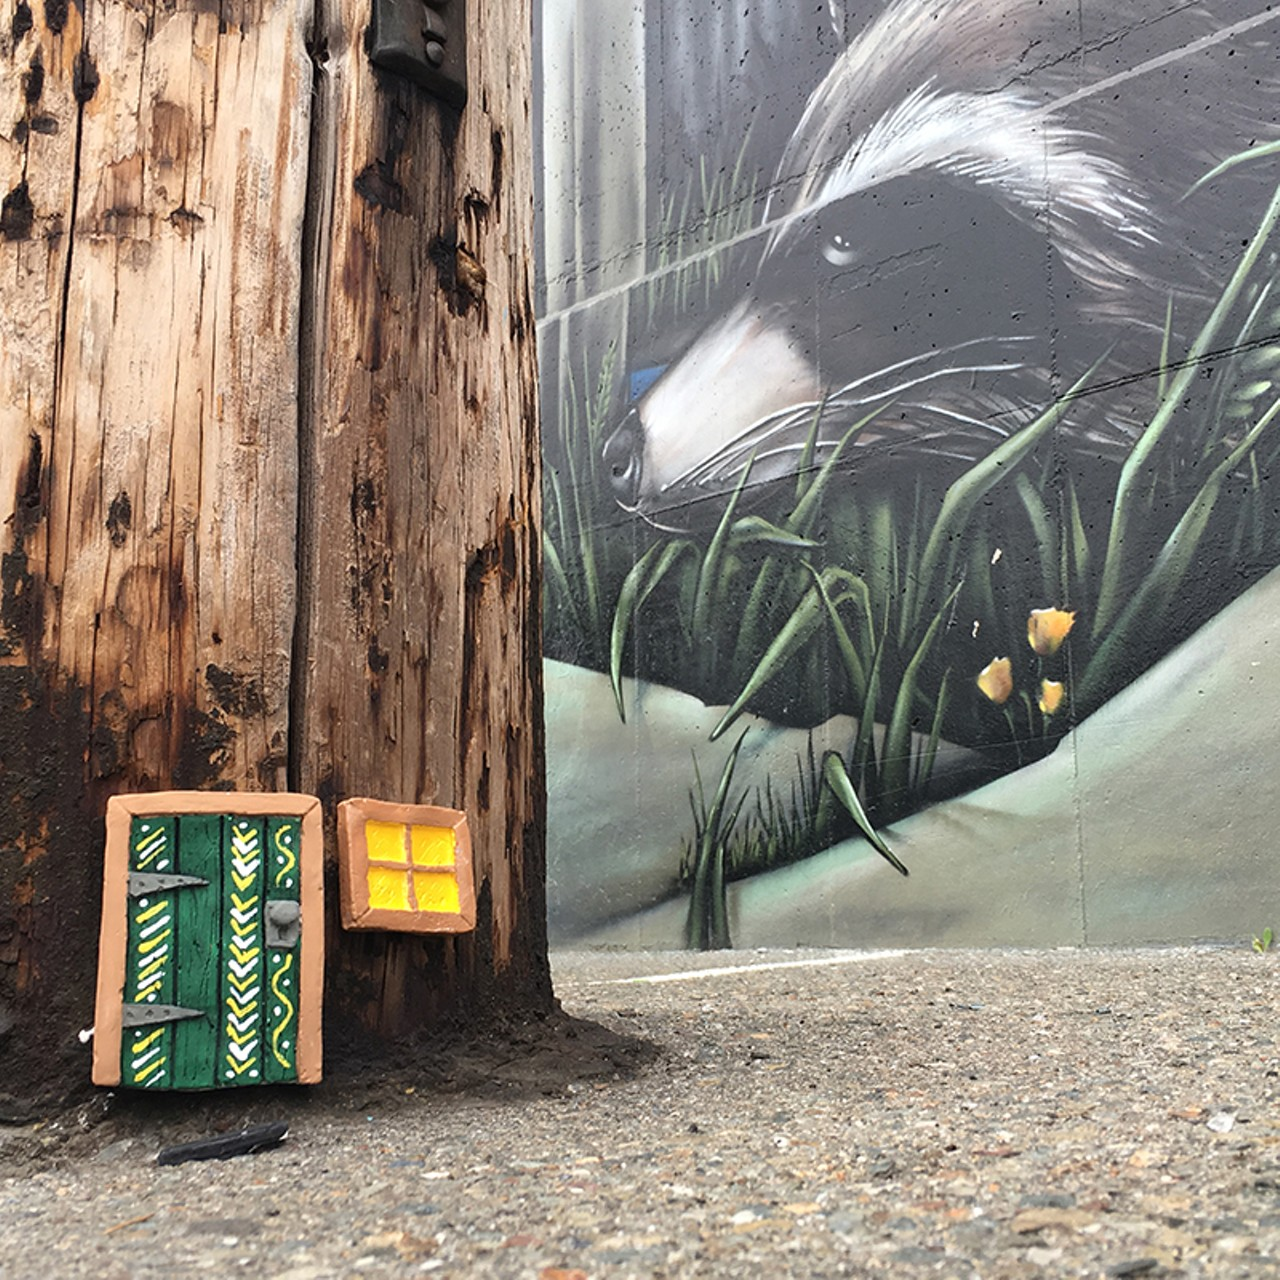 click to enlarge COURTESY OF @MOWS510 - A tiny door with a chevron pattern by Mows. & Mouse Doors to Your Imagination | Visual Art u2013 Web Only | East Bay ...